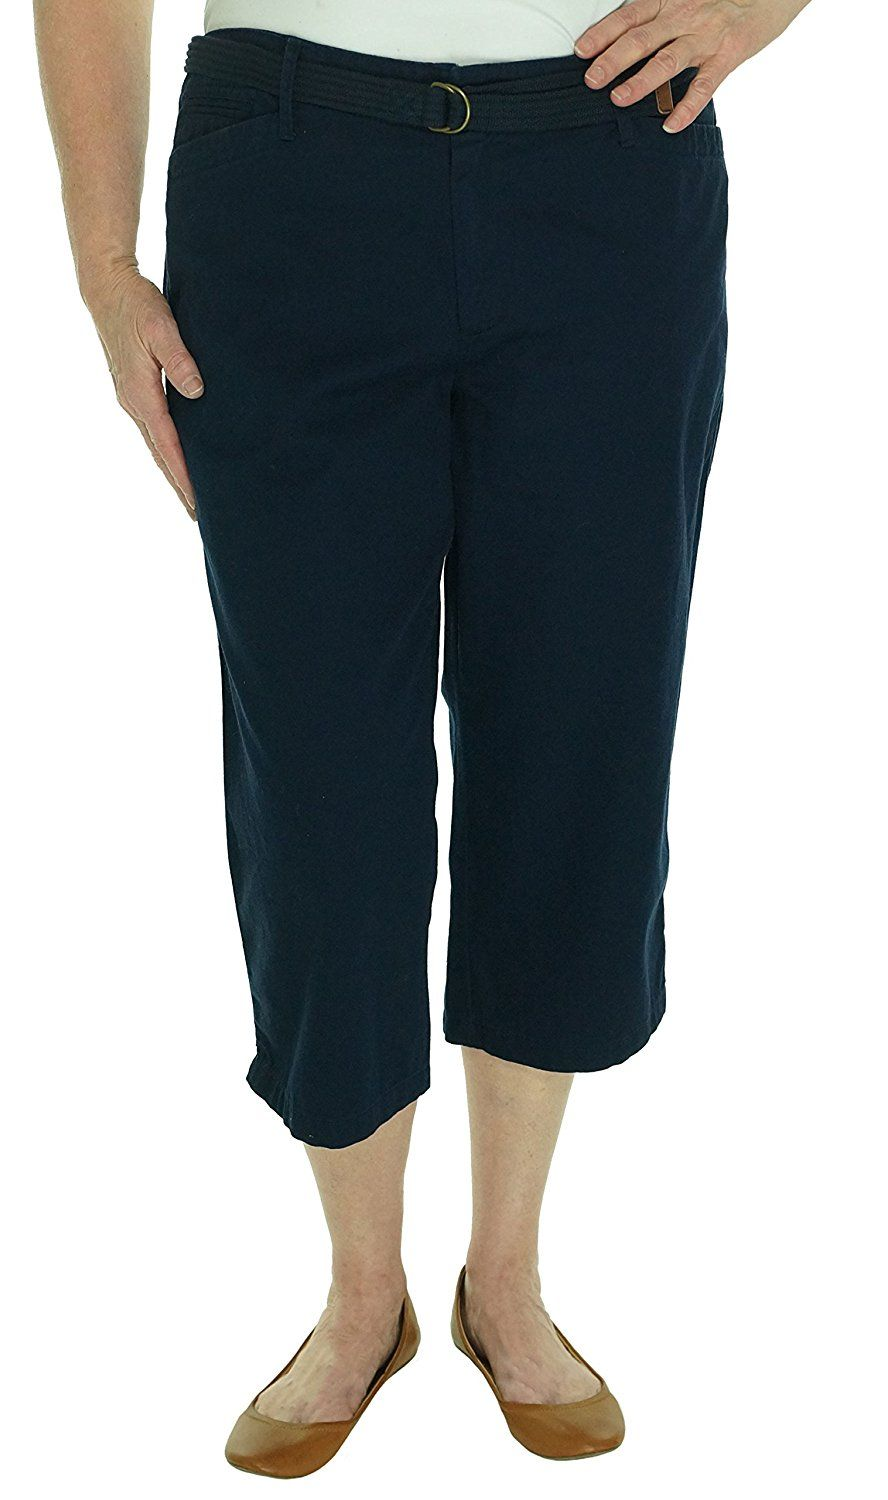 Lauren Jeans Co Womens Belted Cotton Capri Pants >>> Want additional info? Click on the image.